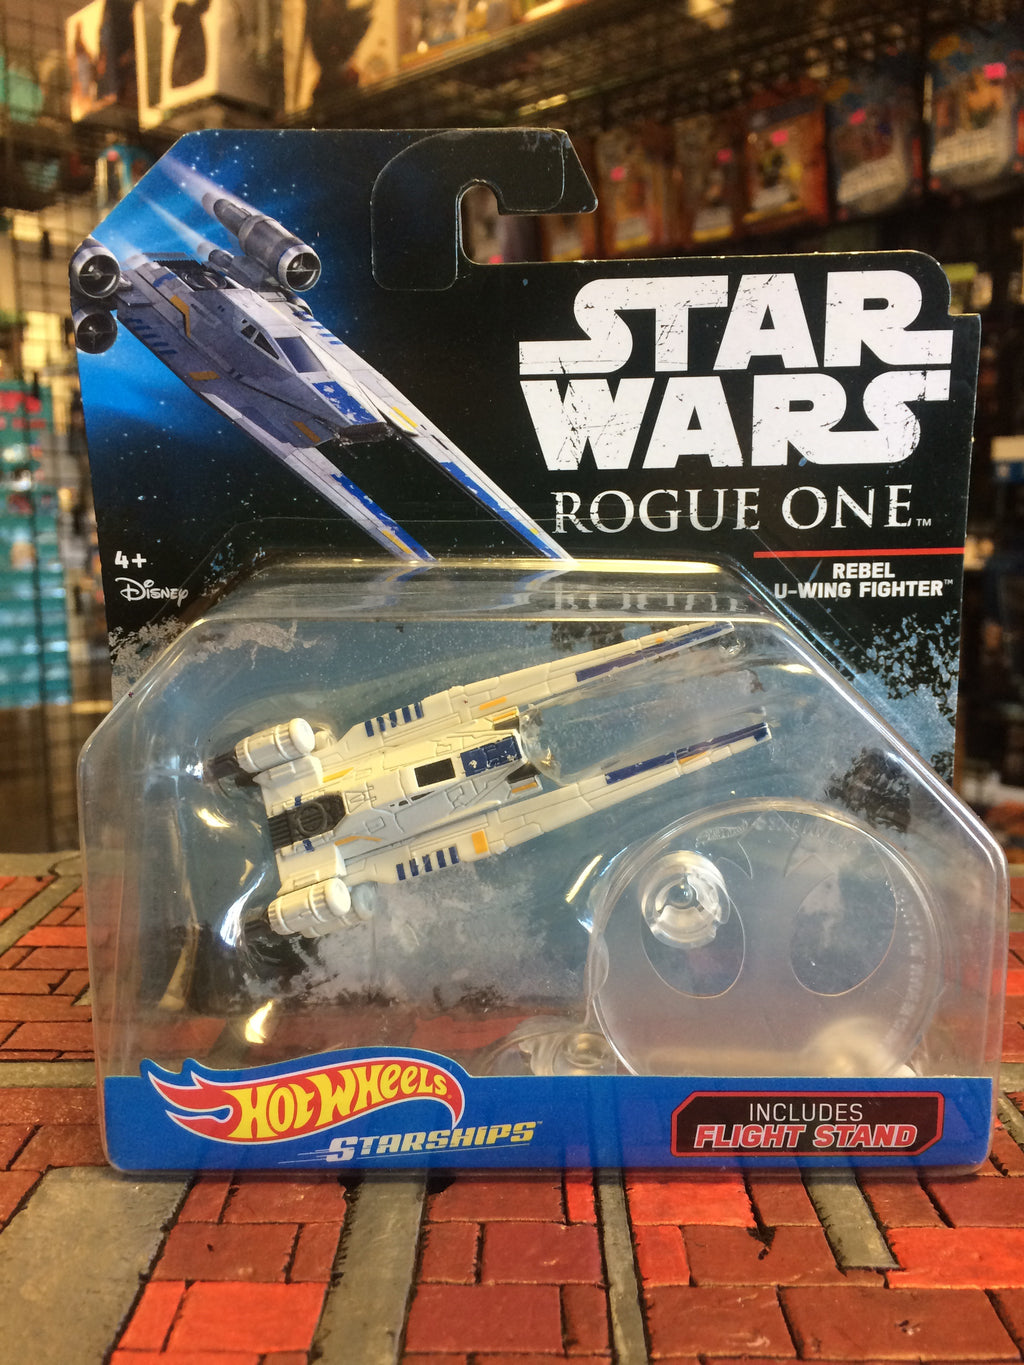 Mattel Hot Wheels Star Wars Rebel U-Wing Fighter